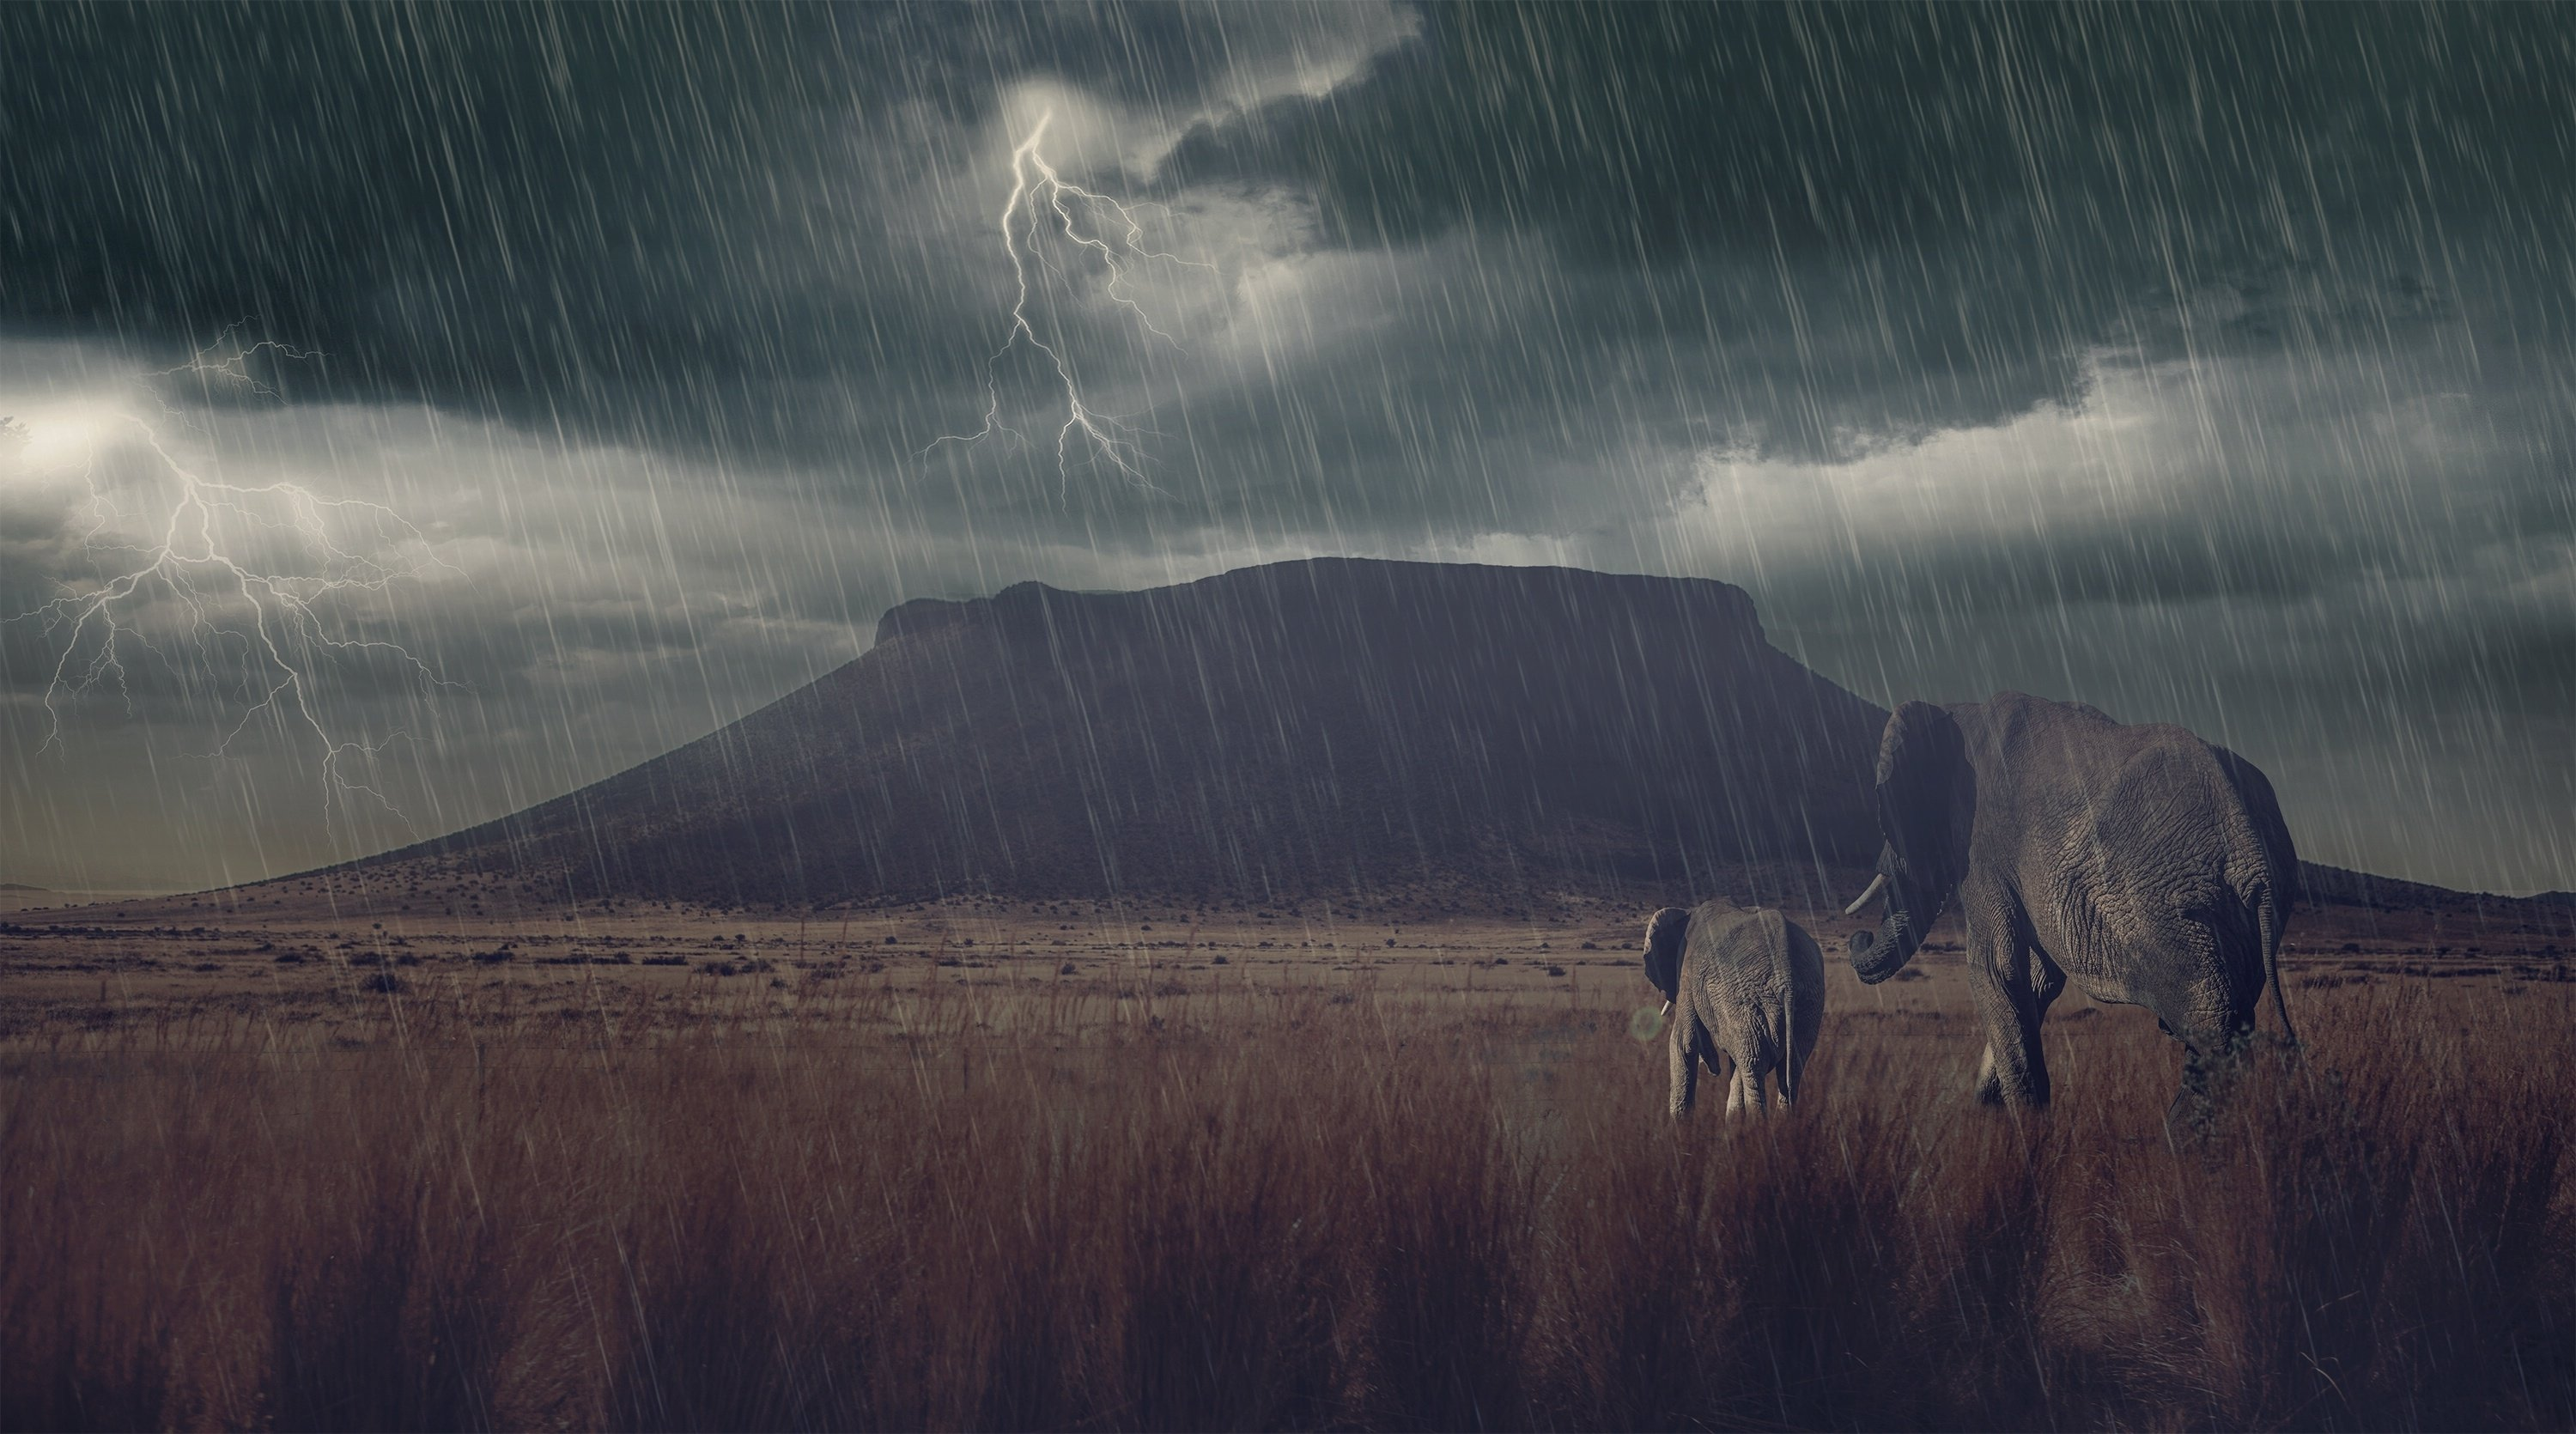 rain mountain storm baby photoshop art artwork wallpaper 3000x1670 3000x1670